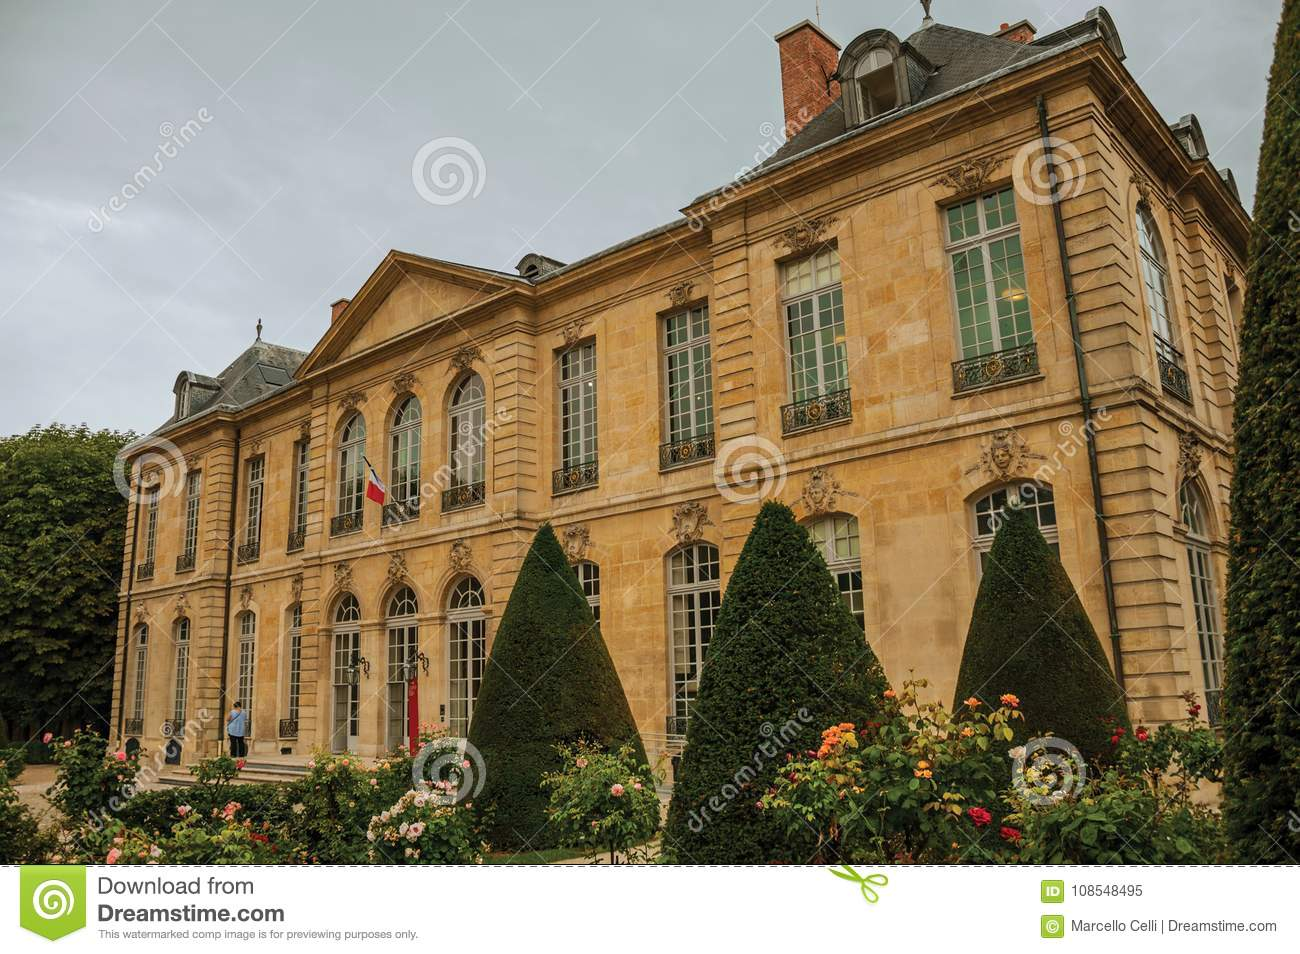 Rodin Museum Building And Gardens On Cloudy Day In Paris. Editorial ...